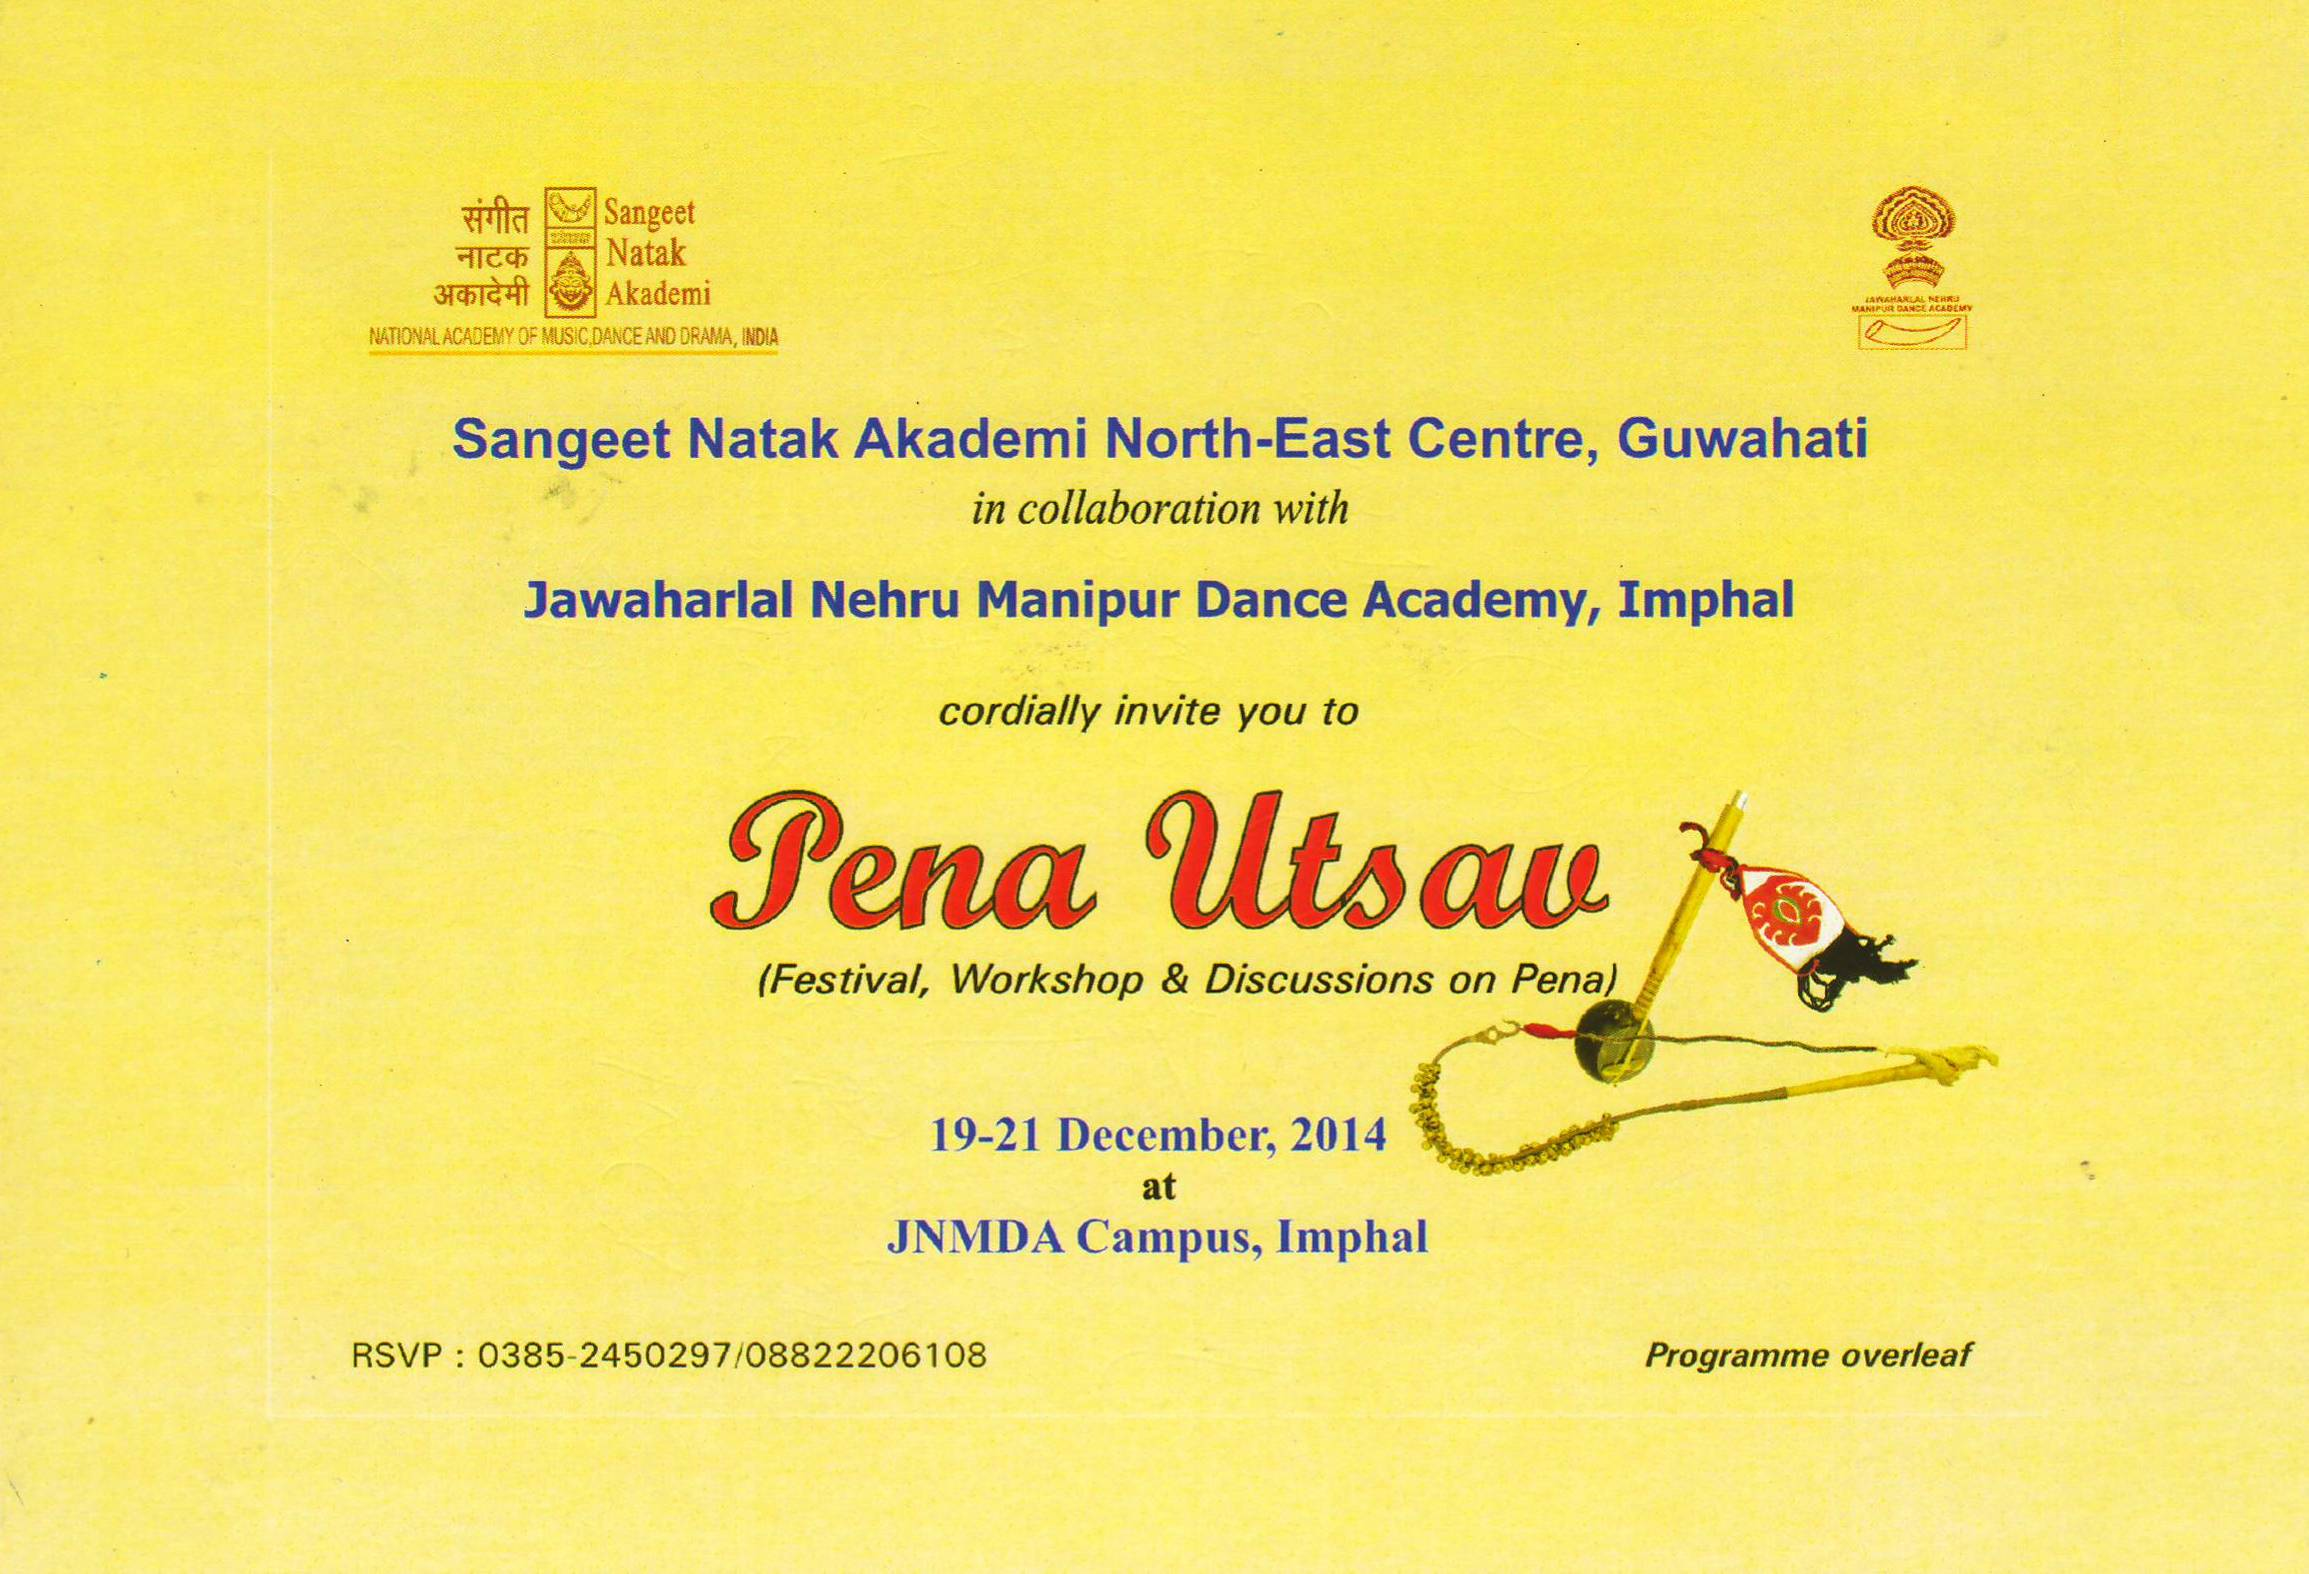 North East Centre Of Sangeet Natak Akademi Invites You To The Pena